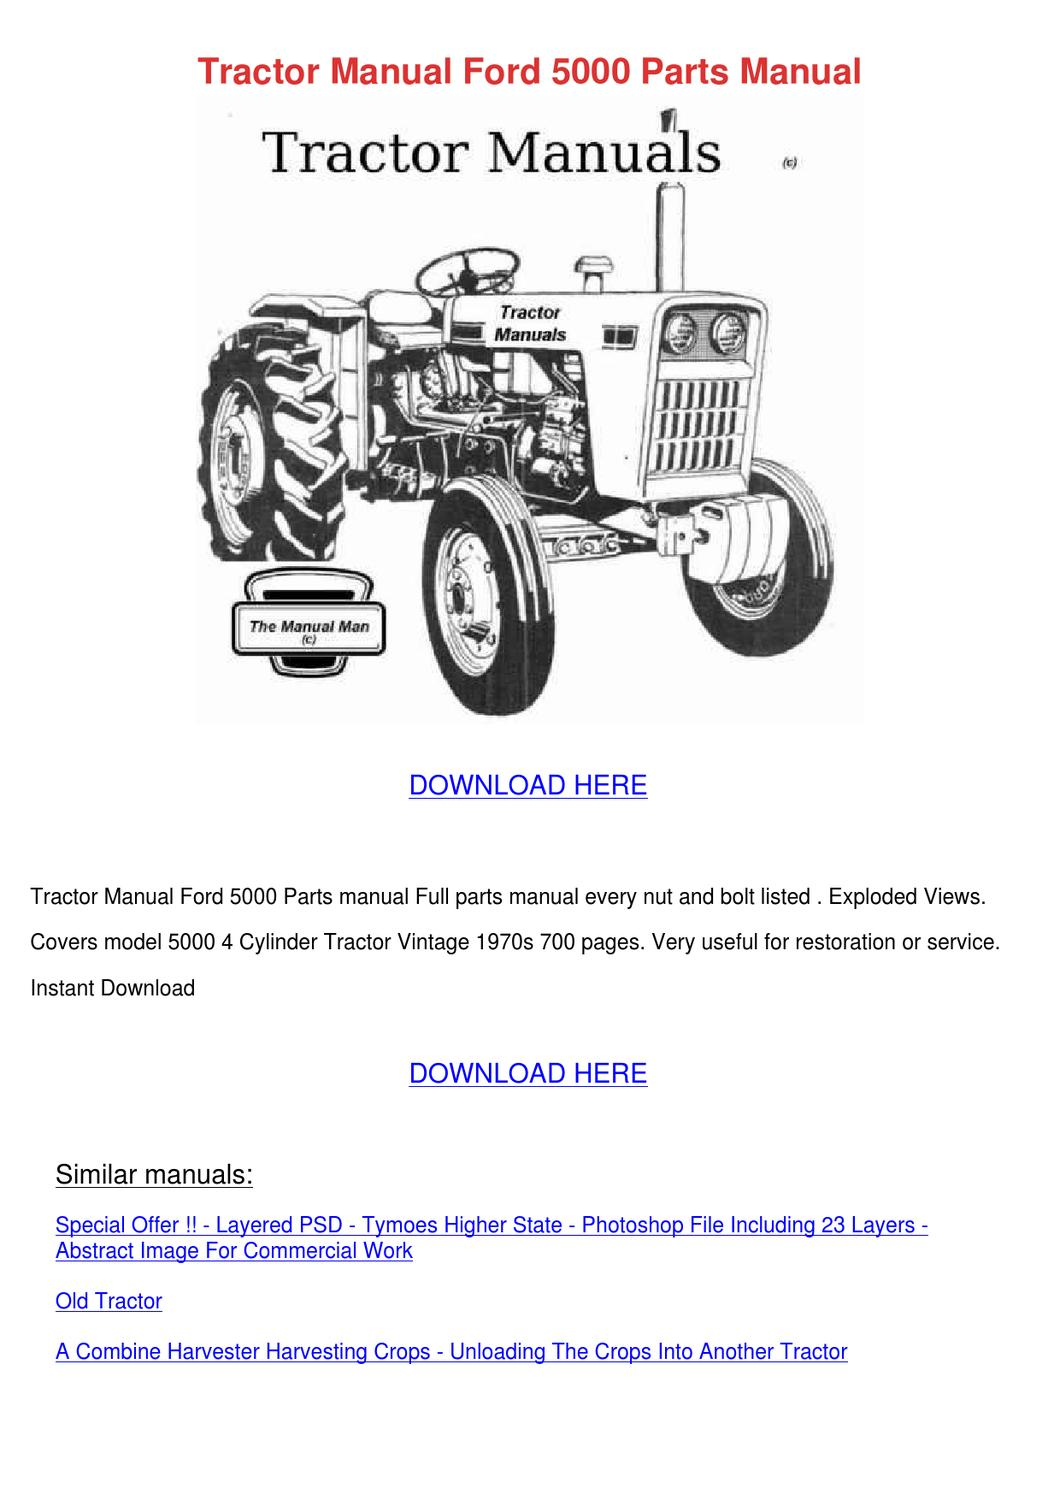 30 Ford 5000 Tractor Parts Diagram Manual Guide